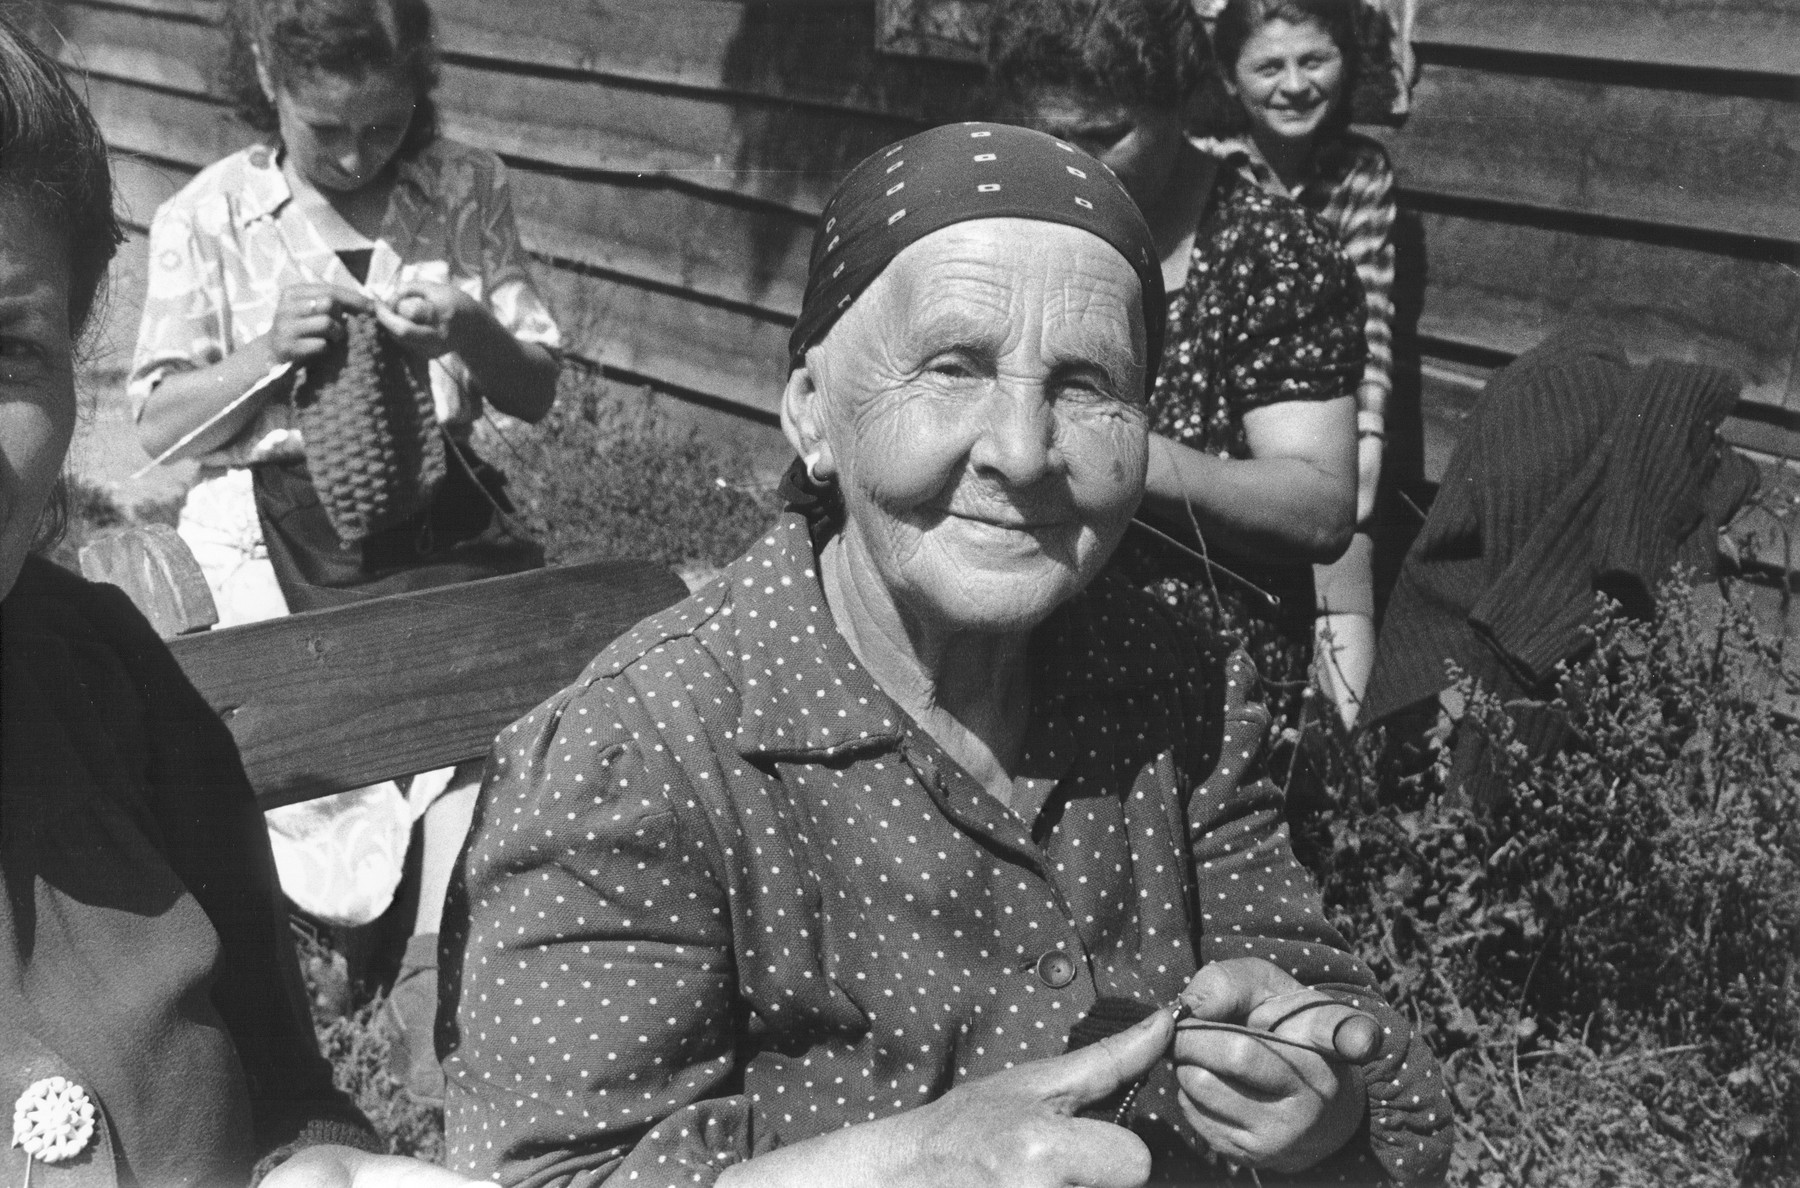 """Portrait of an elderly, Jewish DP woman, who is knitting outside with a group of women at a displaced persons camp in Austria.    Julien Bryan described this woman as follows: """"She was a grandmother in her eighties, living in an Austrian DP camp right after the war.  She was alone -- almost all of her relatives had been killed in the gas chambers of Auschwitz.  She was too old to be emigrated.  Her past destroyed, her future without hope, she seemed to possess an inner calm that allowed no place for bitterness.  I shall always remember her because she could still smile."""" [Source: International Film Foundation Catalog ca 1956]."""